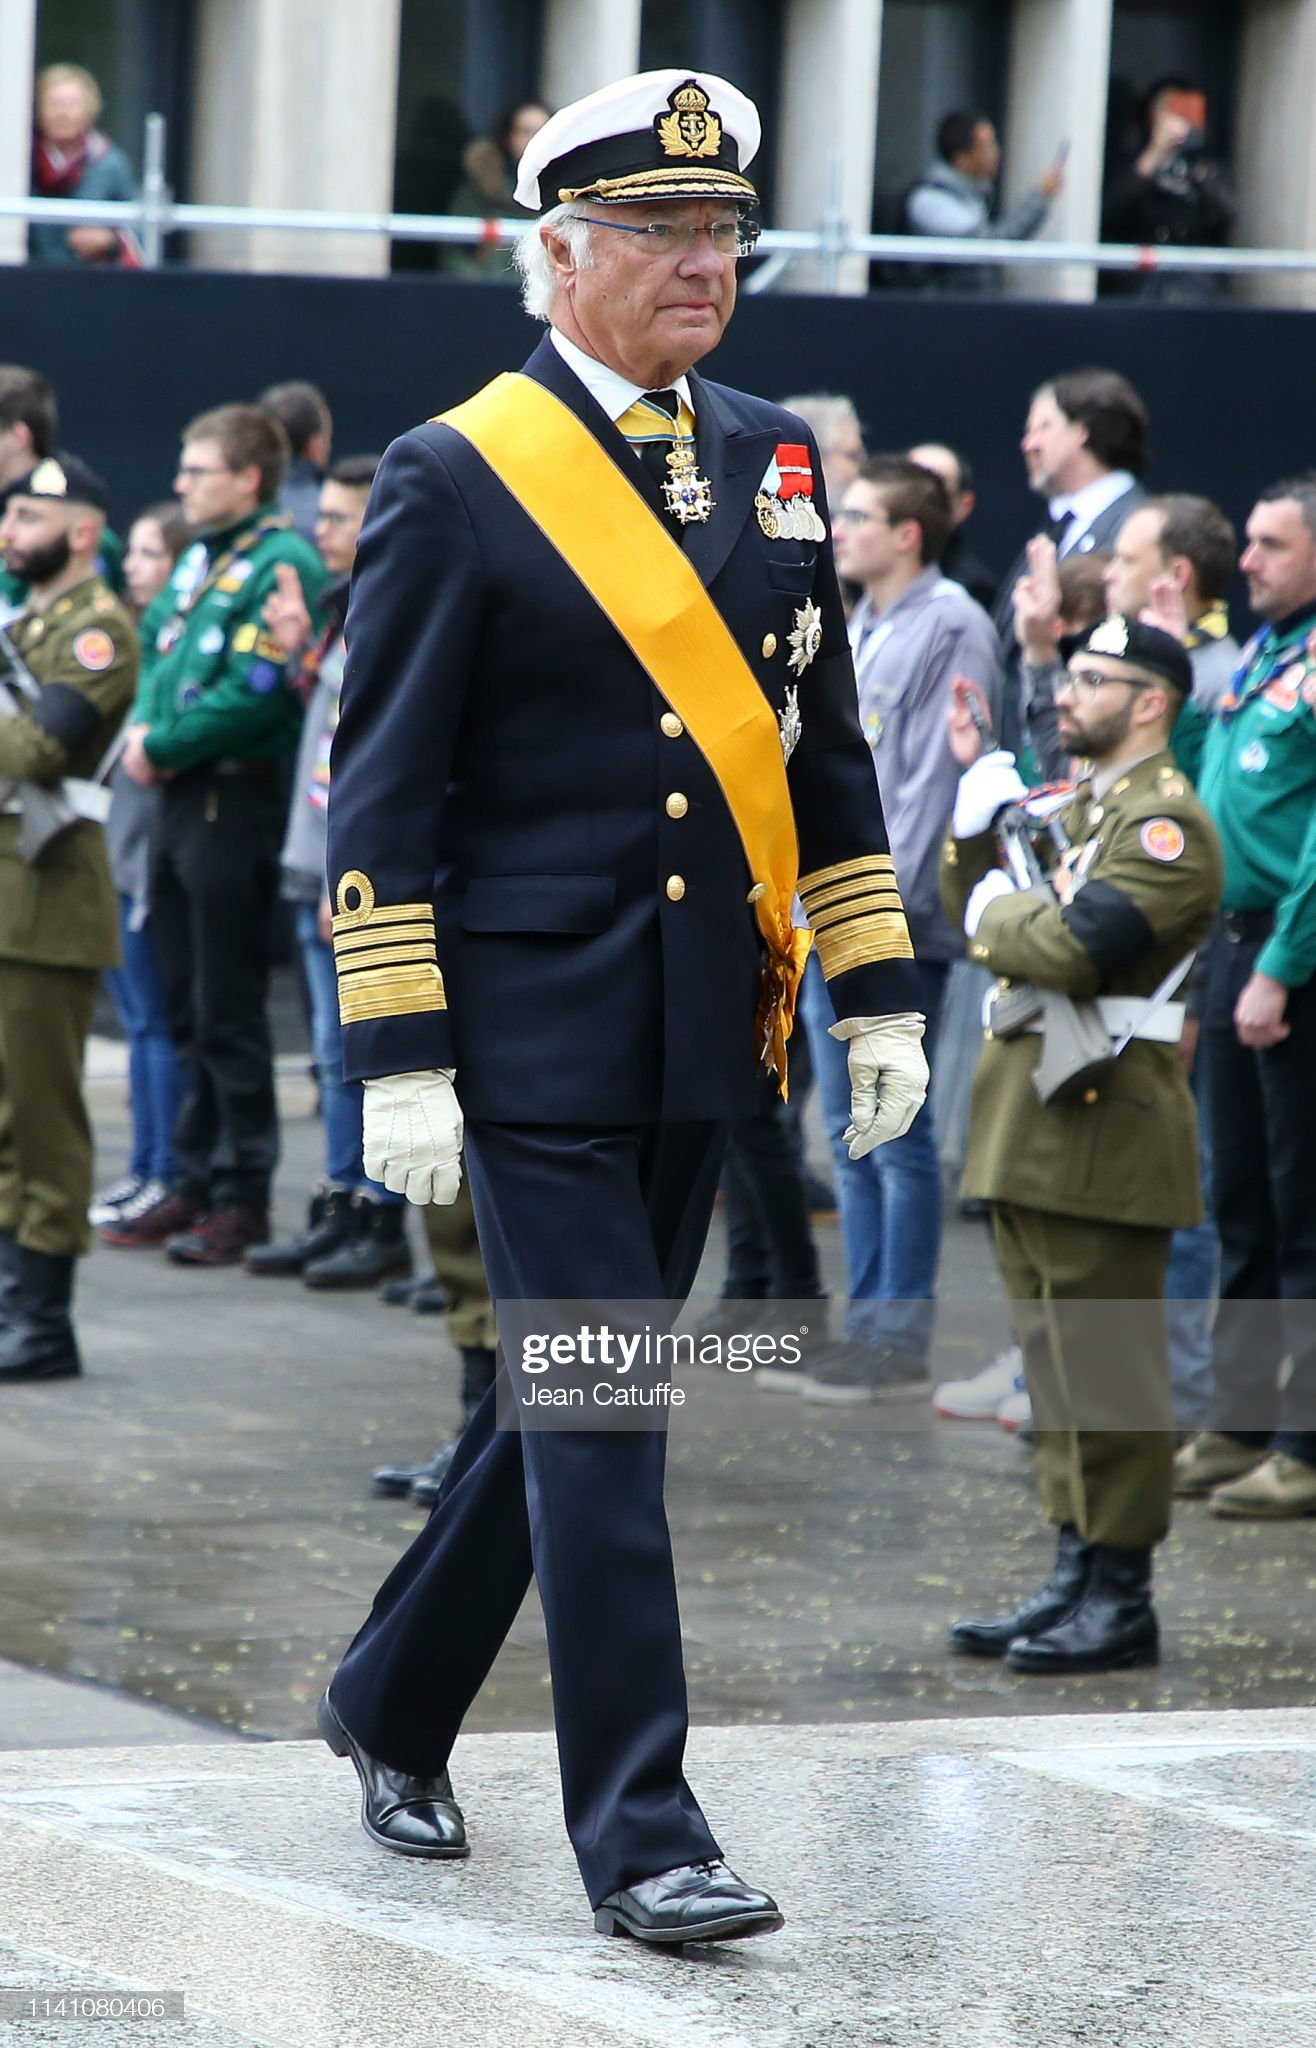 Похороны Великого Герцога Жана https://media.gettyimages.com/photos/king-carl-xvi-gustaf-of-sweden-arrives-for-the-funeral-of-grand-duke-picture-id1141080406?s=2048x2048